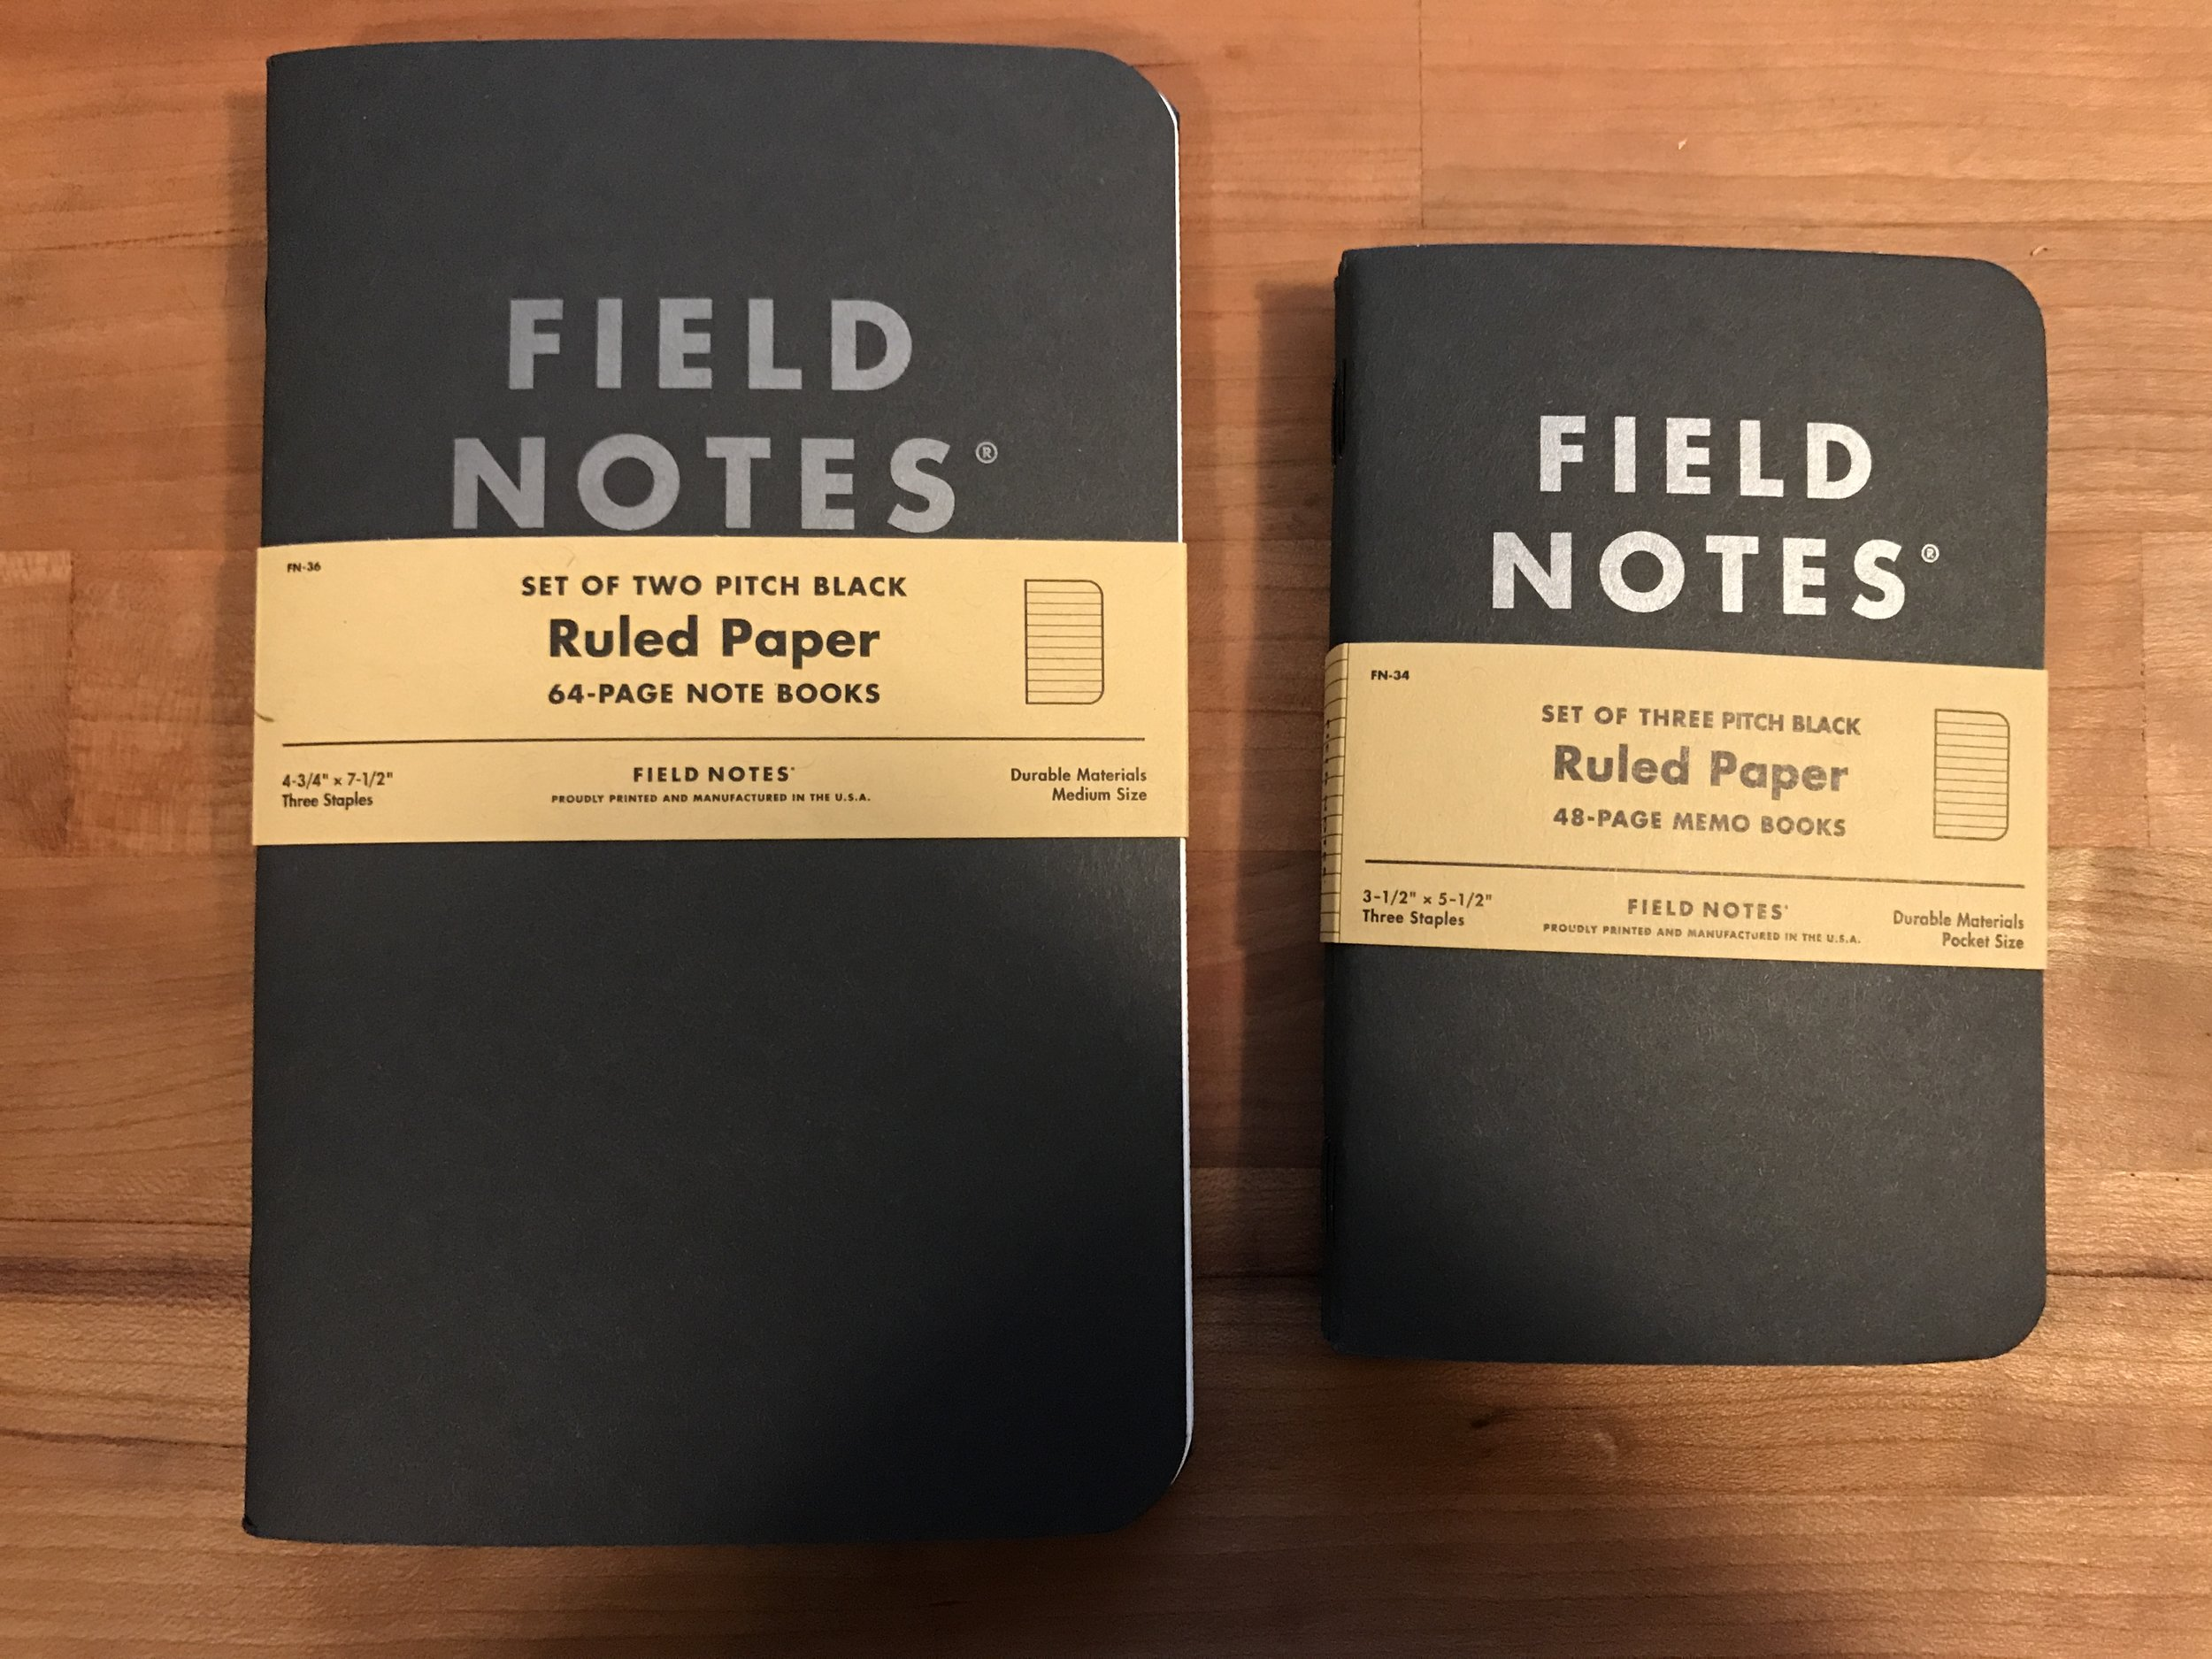 Field Notes Pitch Black Notebook Review \u2014 Lead Fast